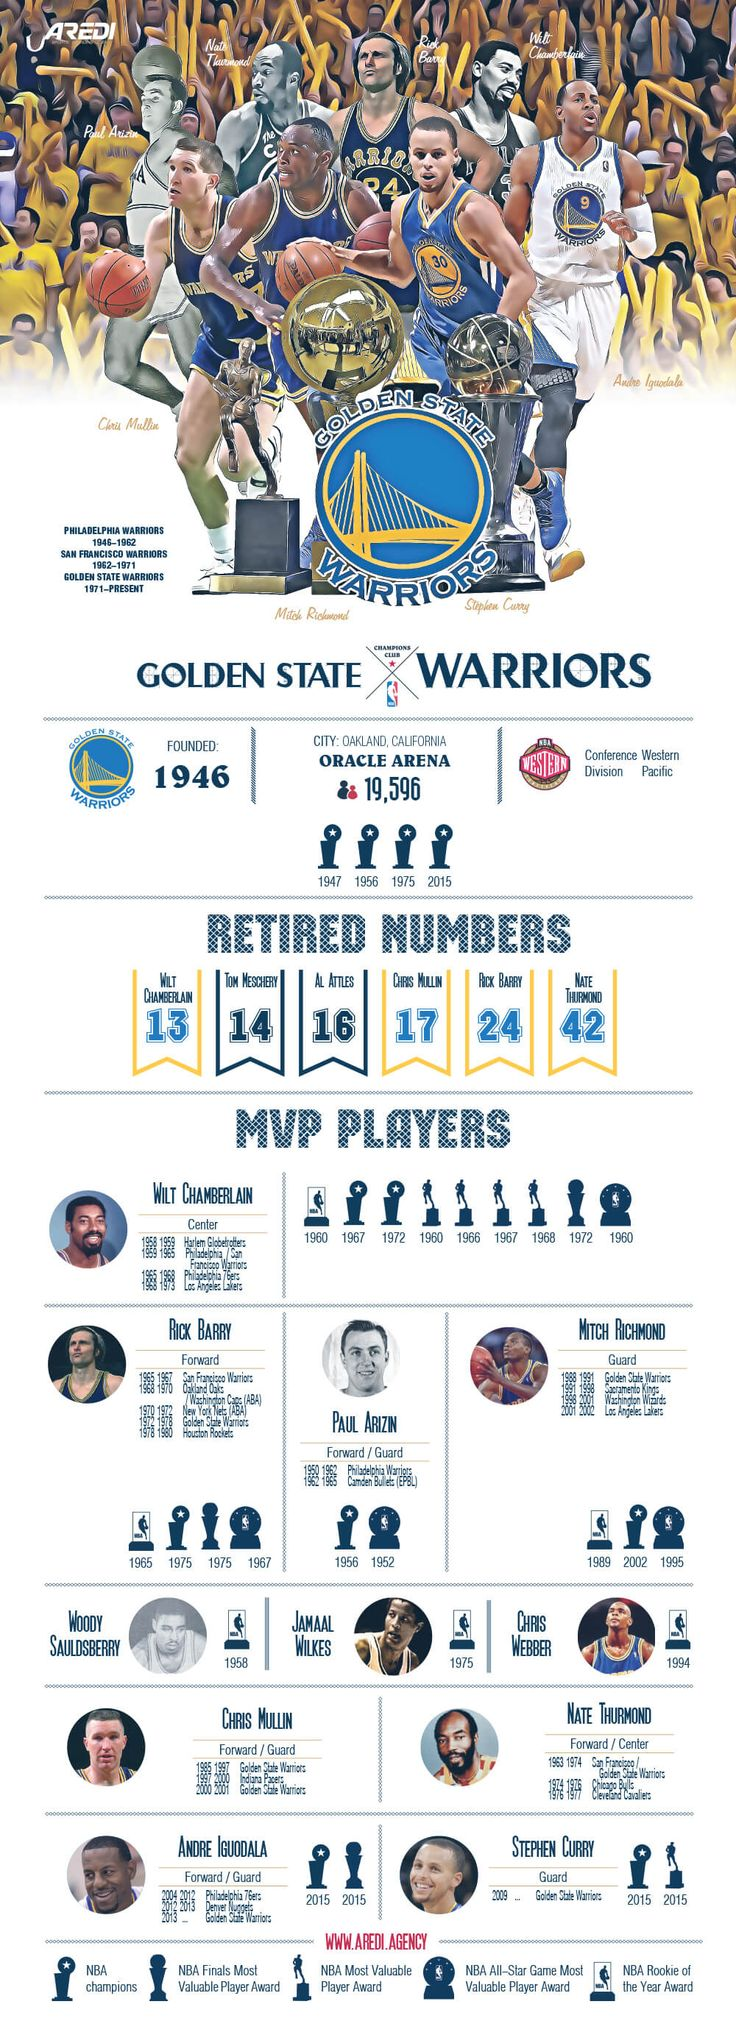 Golden State Warriors, infographic, basketball, champion, sport, NBA, design, create. art, branding, MVP, Legends, champions, Wilt Chamberlain, Chris Mullin, Nate Thurmond, Rick Barry,Tom Meschery, Jo Jo White, Stephen Curry, Andre Iguodala, #sportaredi